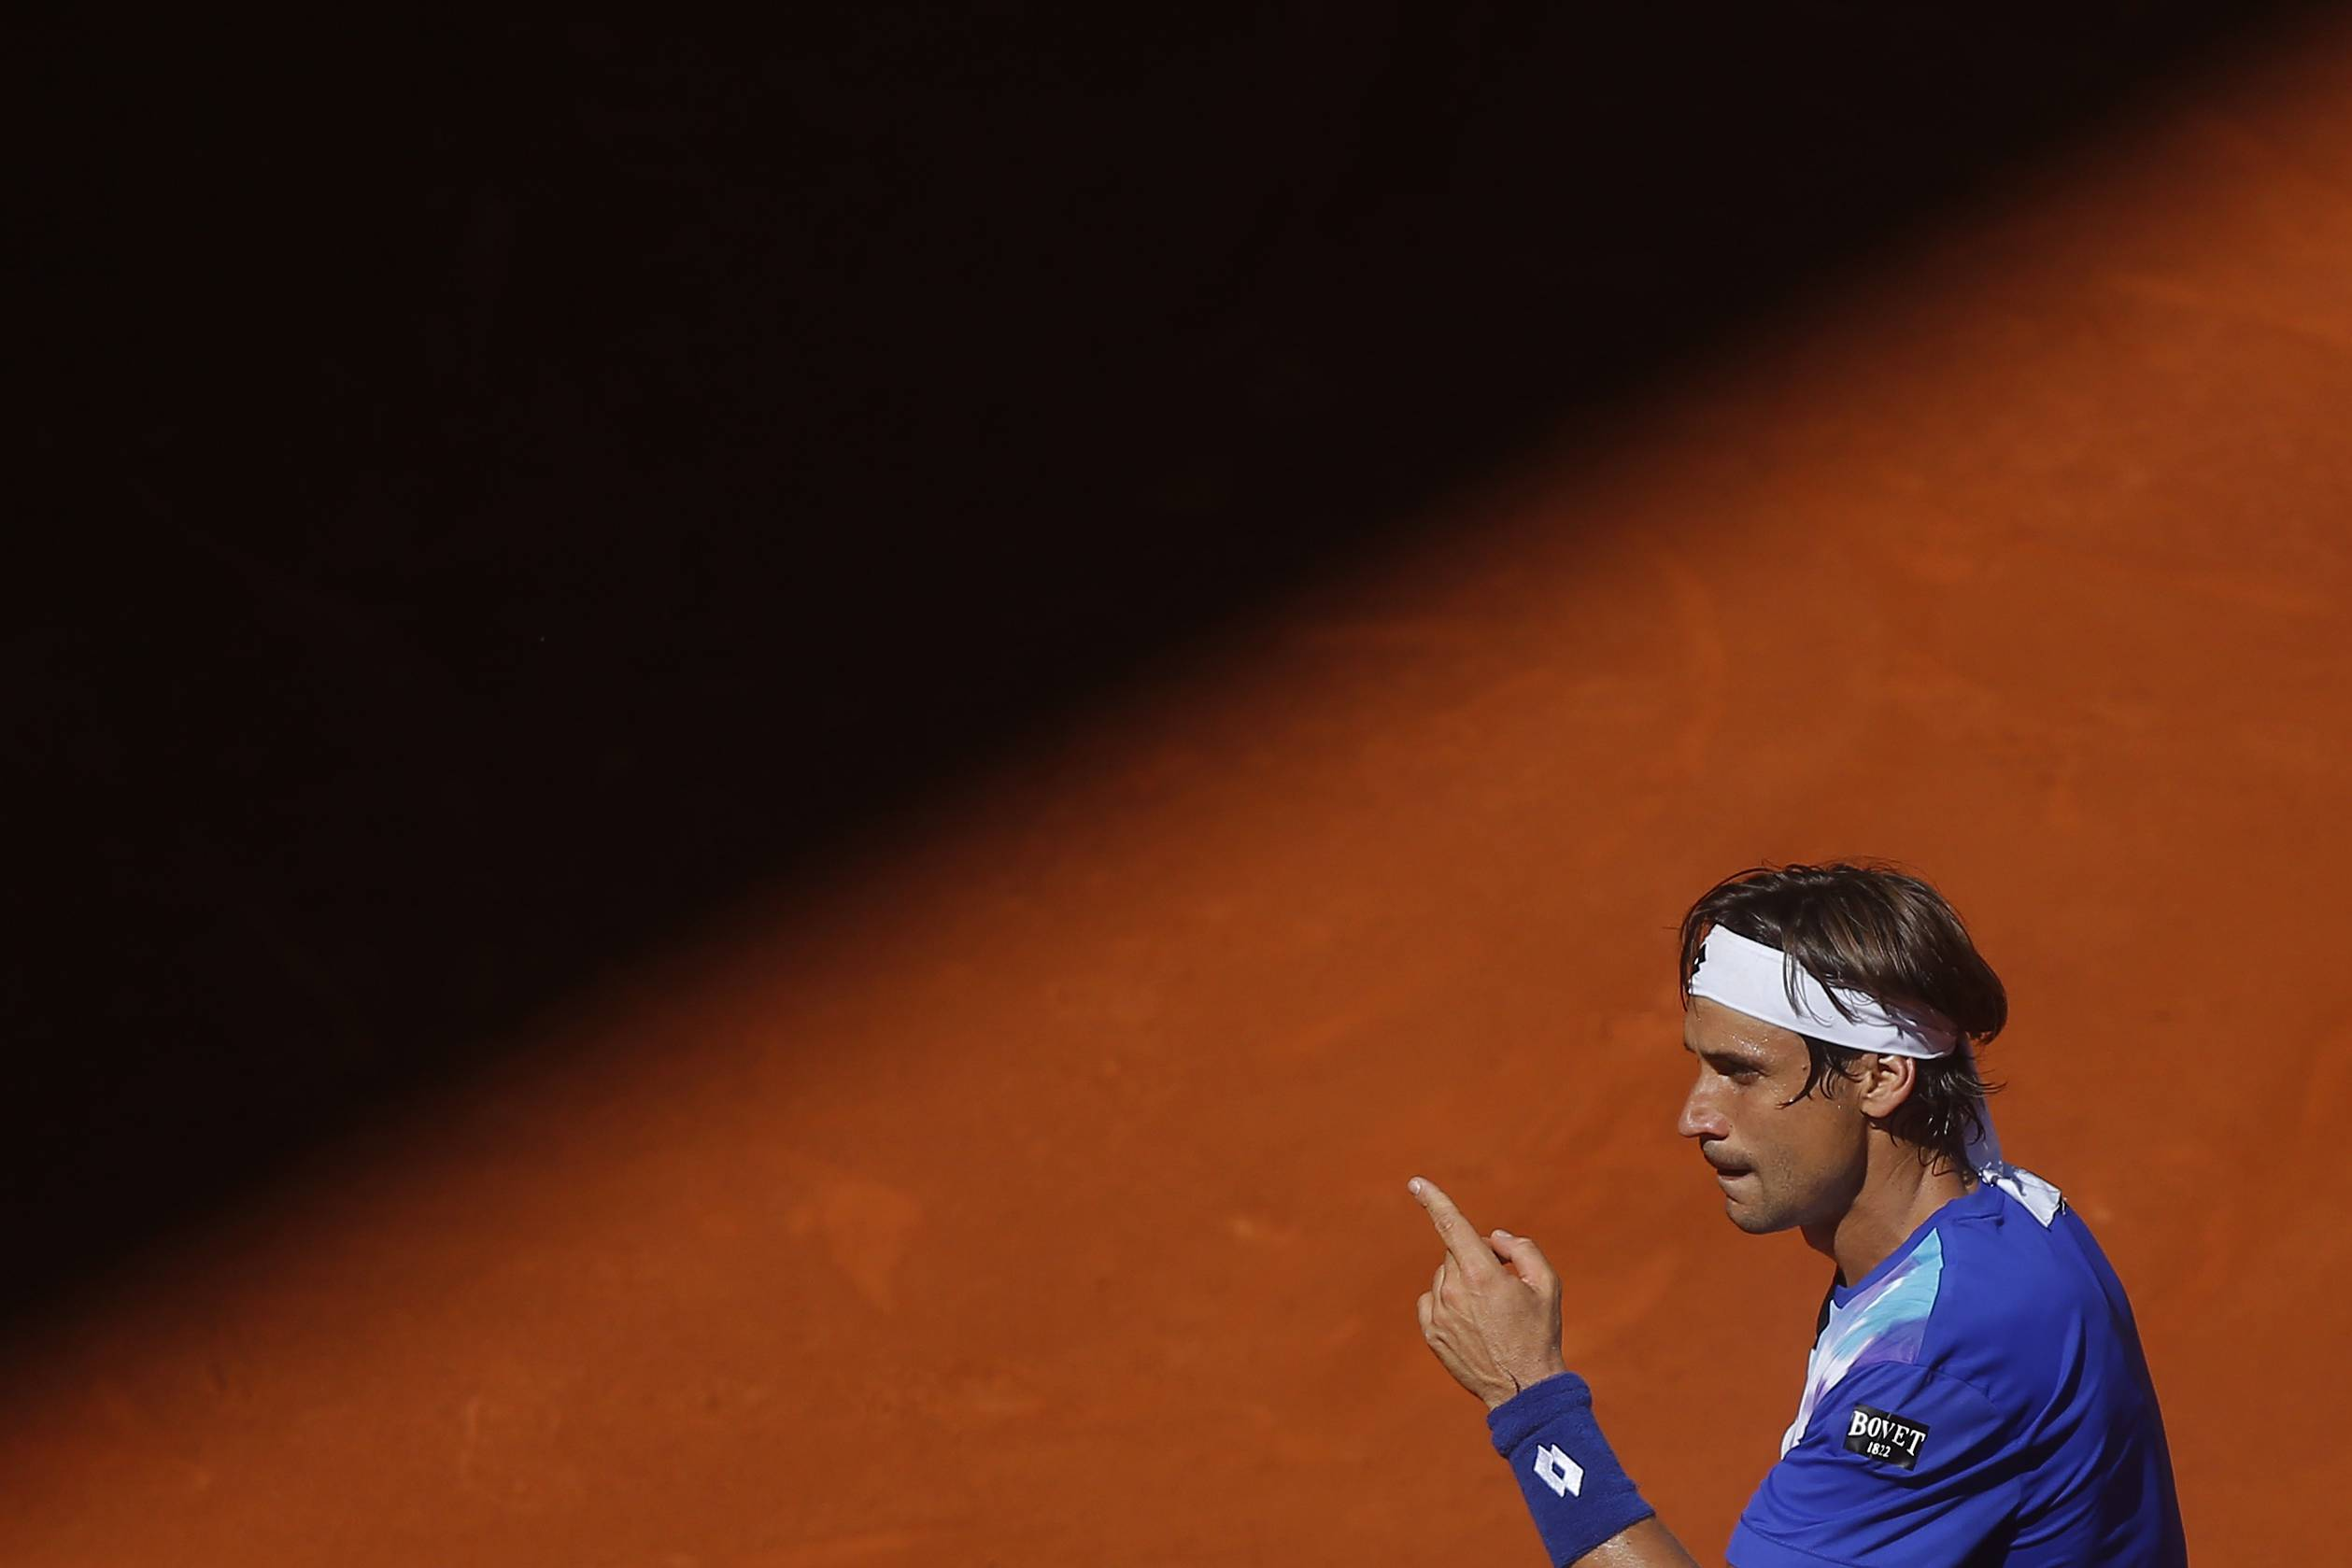 David Ferrer from Spain gestures during a Madrid Open tennis tournament match against Albert Ramos from Spain, in Madrid, Spain, Tuesday, May 6, 2014.